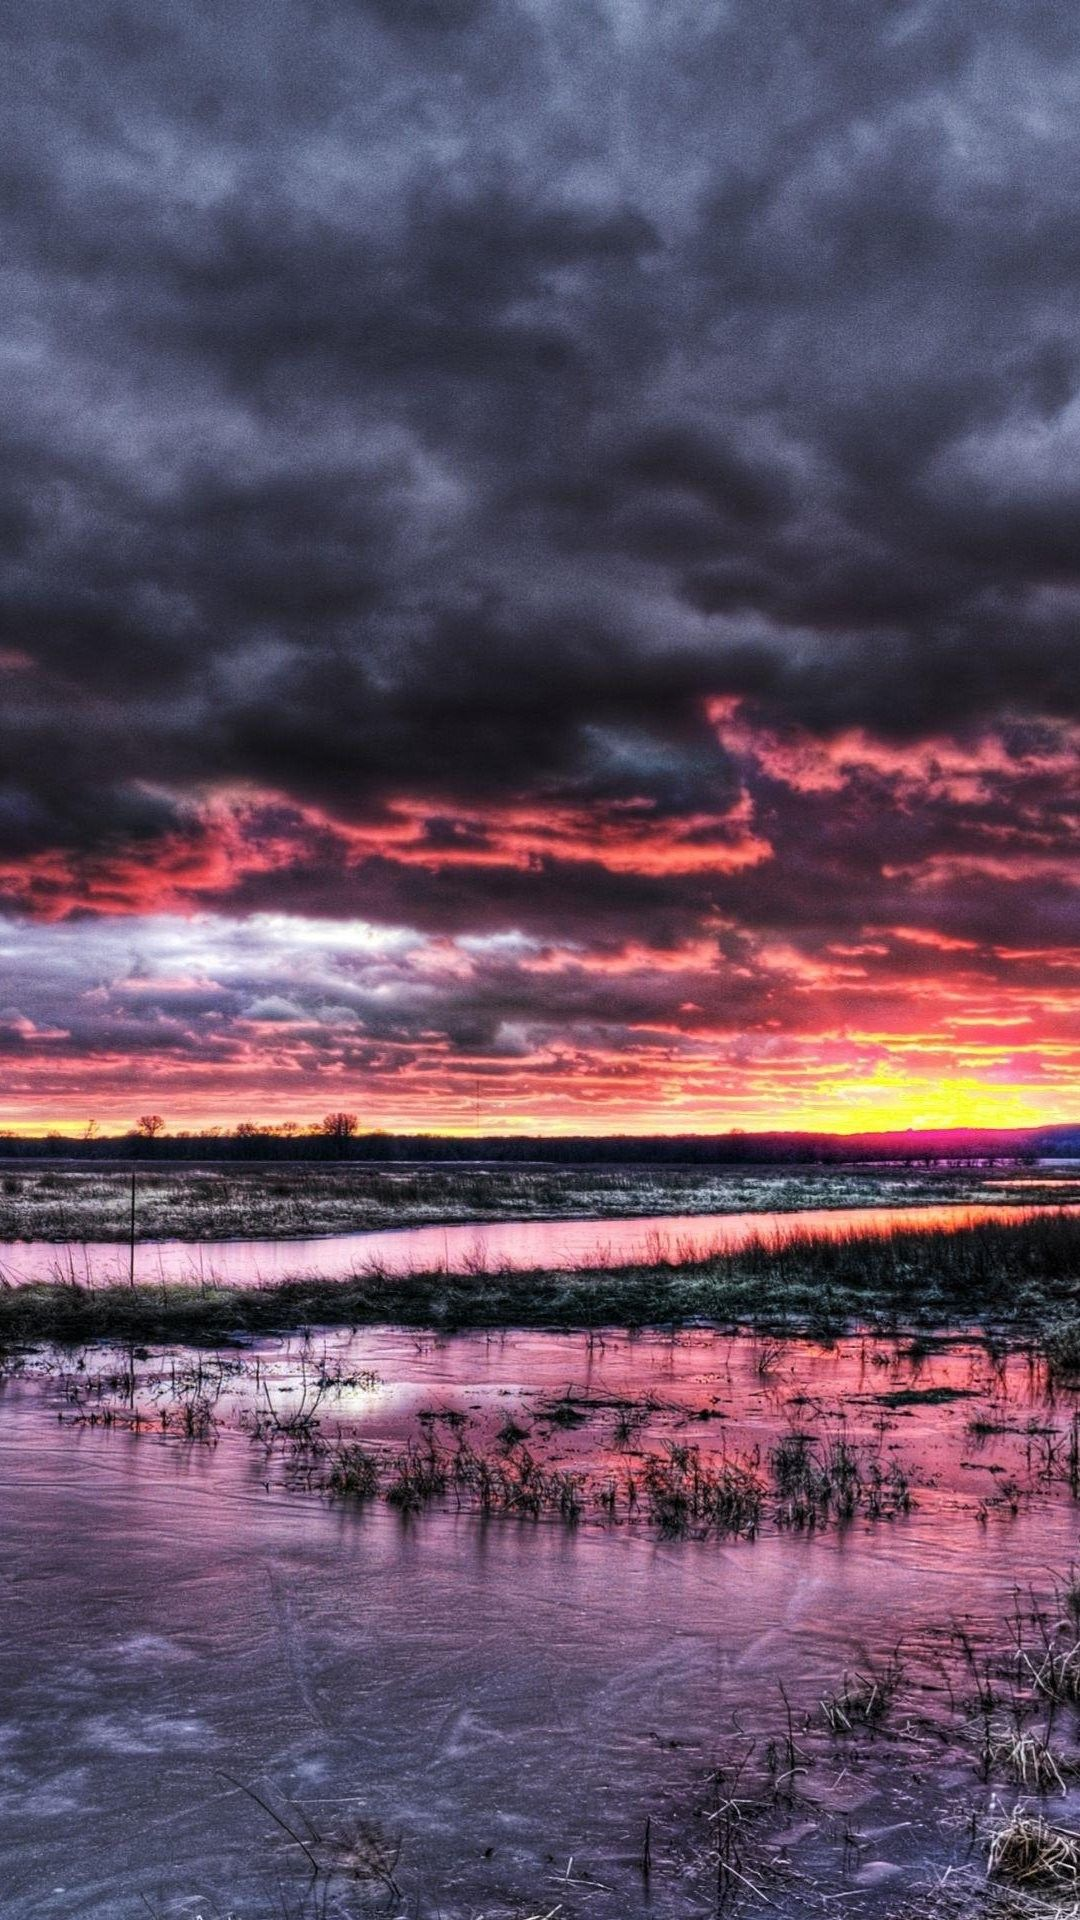 Nature iphone 6 plus wallpapers dramatic sunset over frozen marsh iphone 6 plus hd wallpaper - Dramatic wallpaper ...